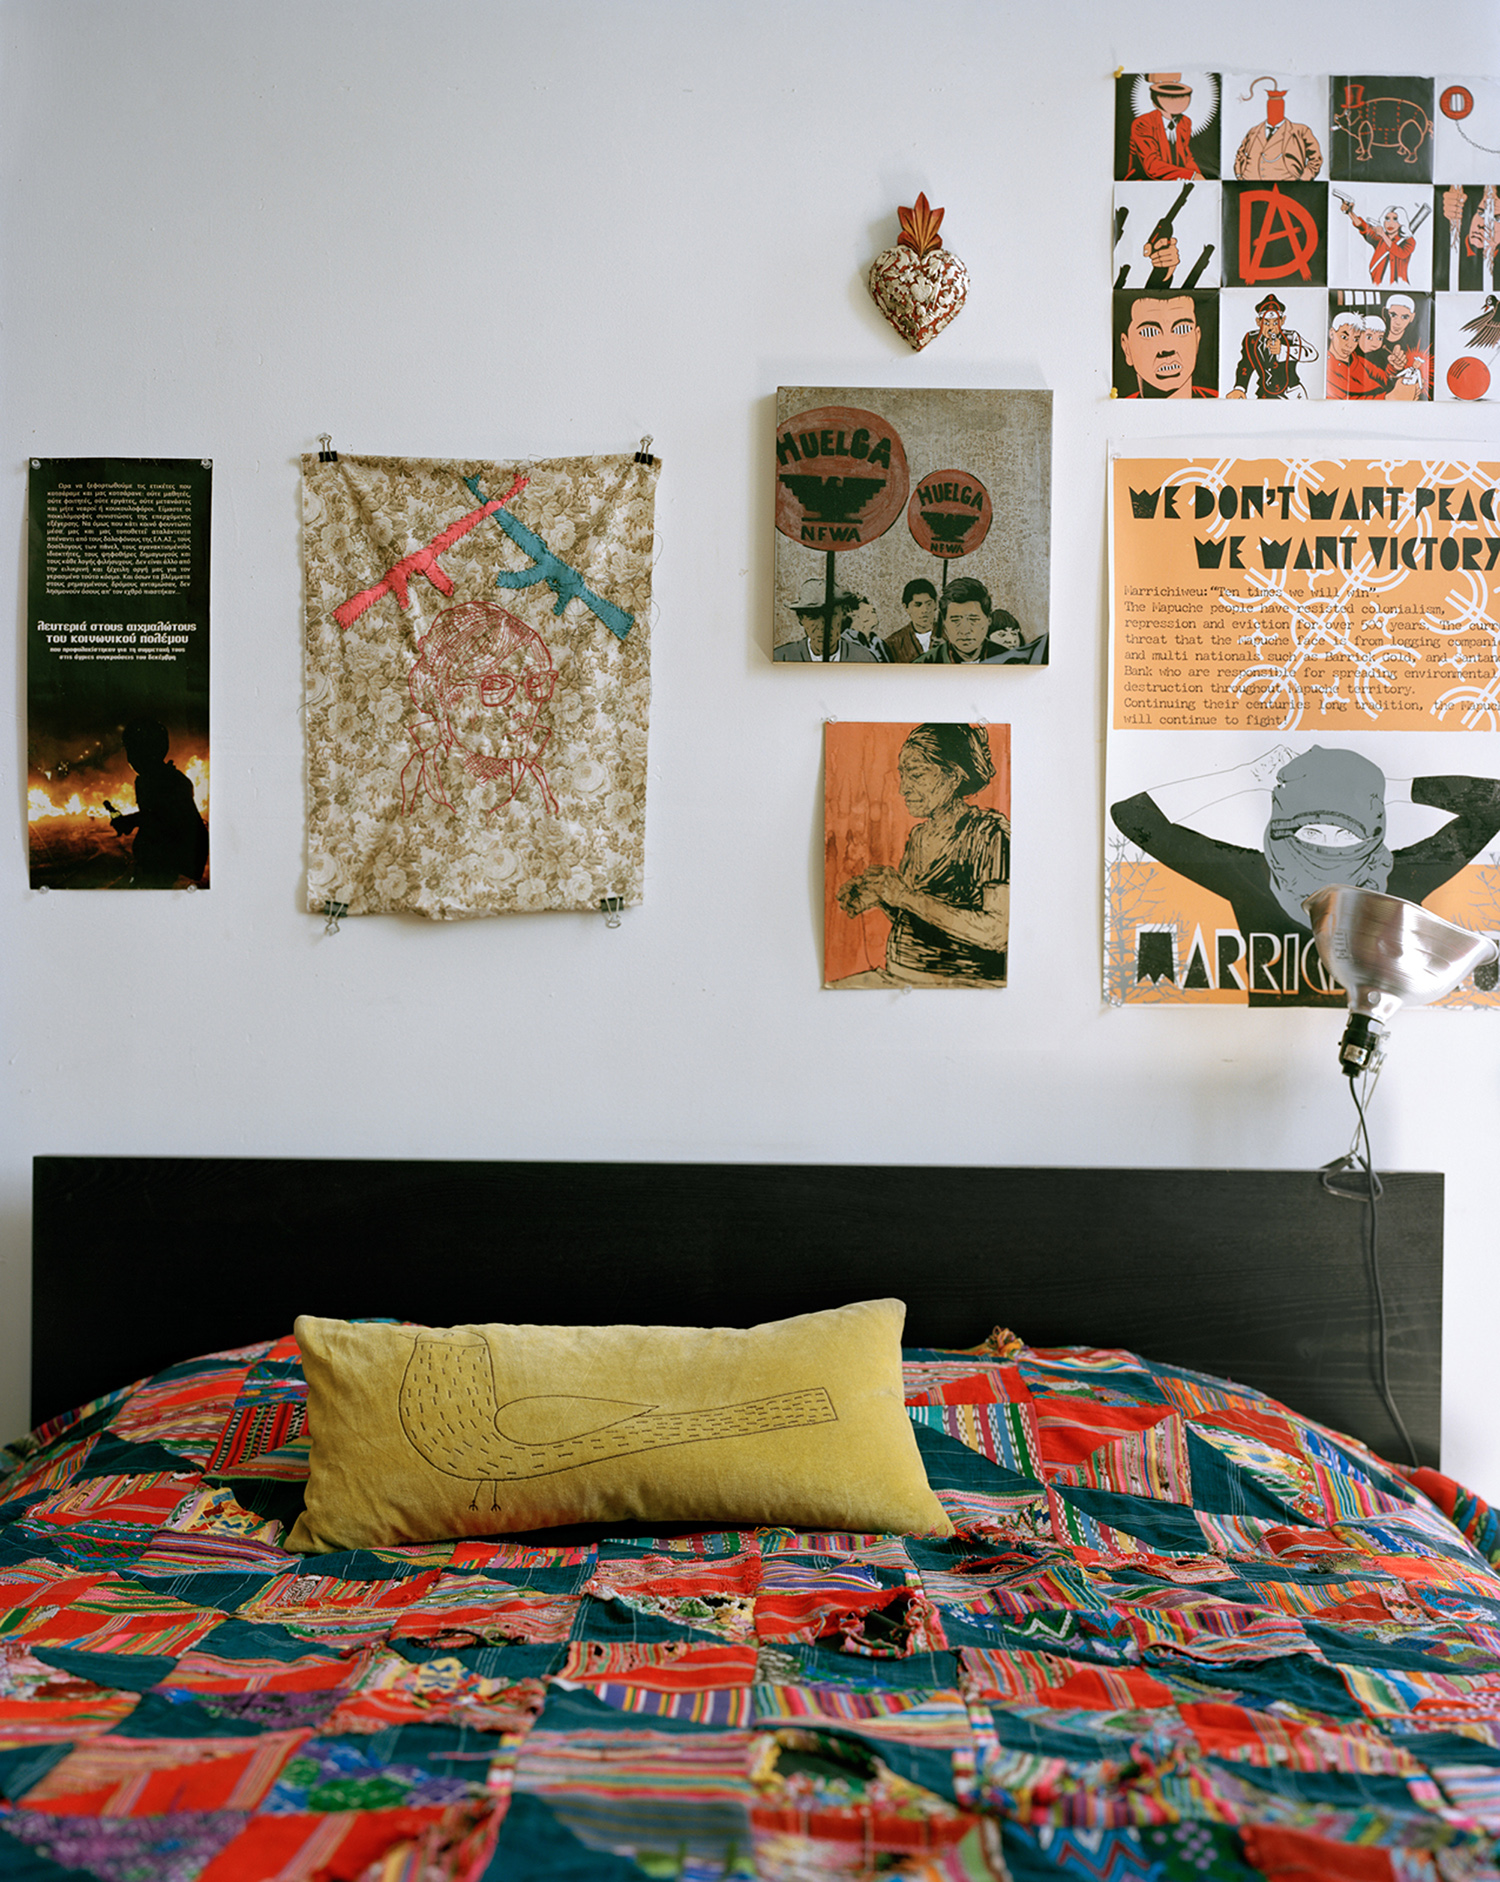 Close up of a bed with a colourful cover against a wall filled with posters, artworks and drawings.